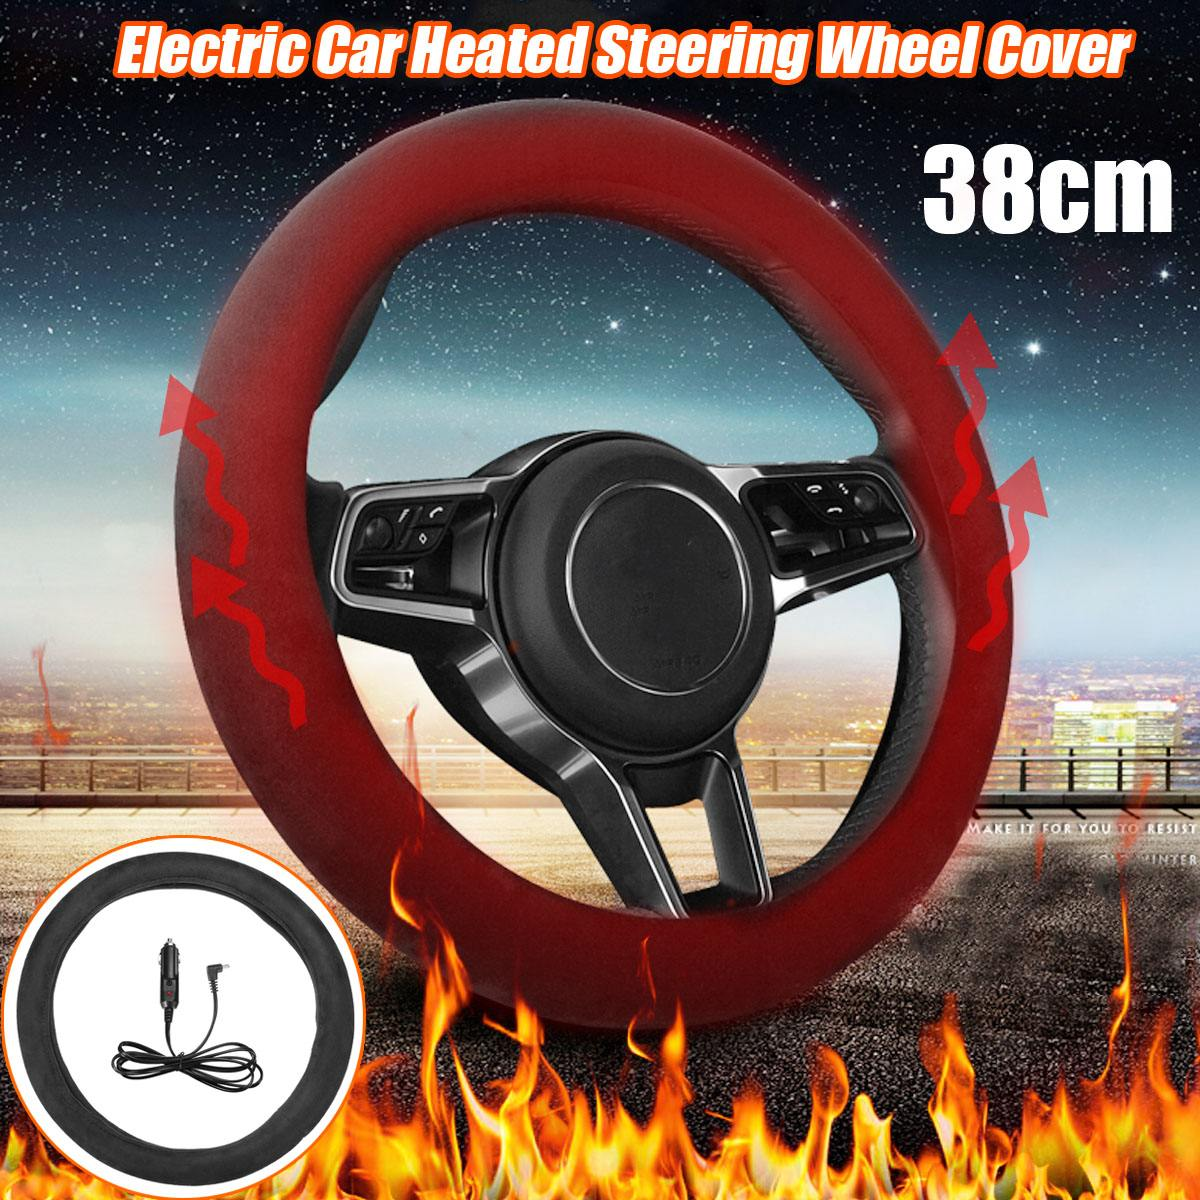 38cm 12V Electric Car Steering Wheel Cover Washable Heated Lighter Plug Warmer Winter Steering Covers Car Accessories